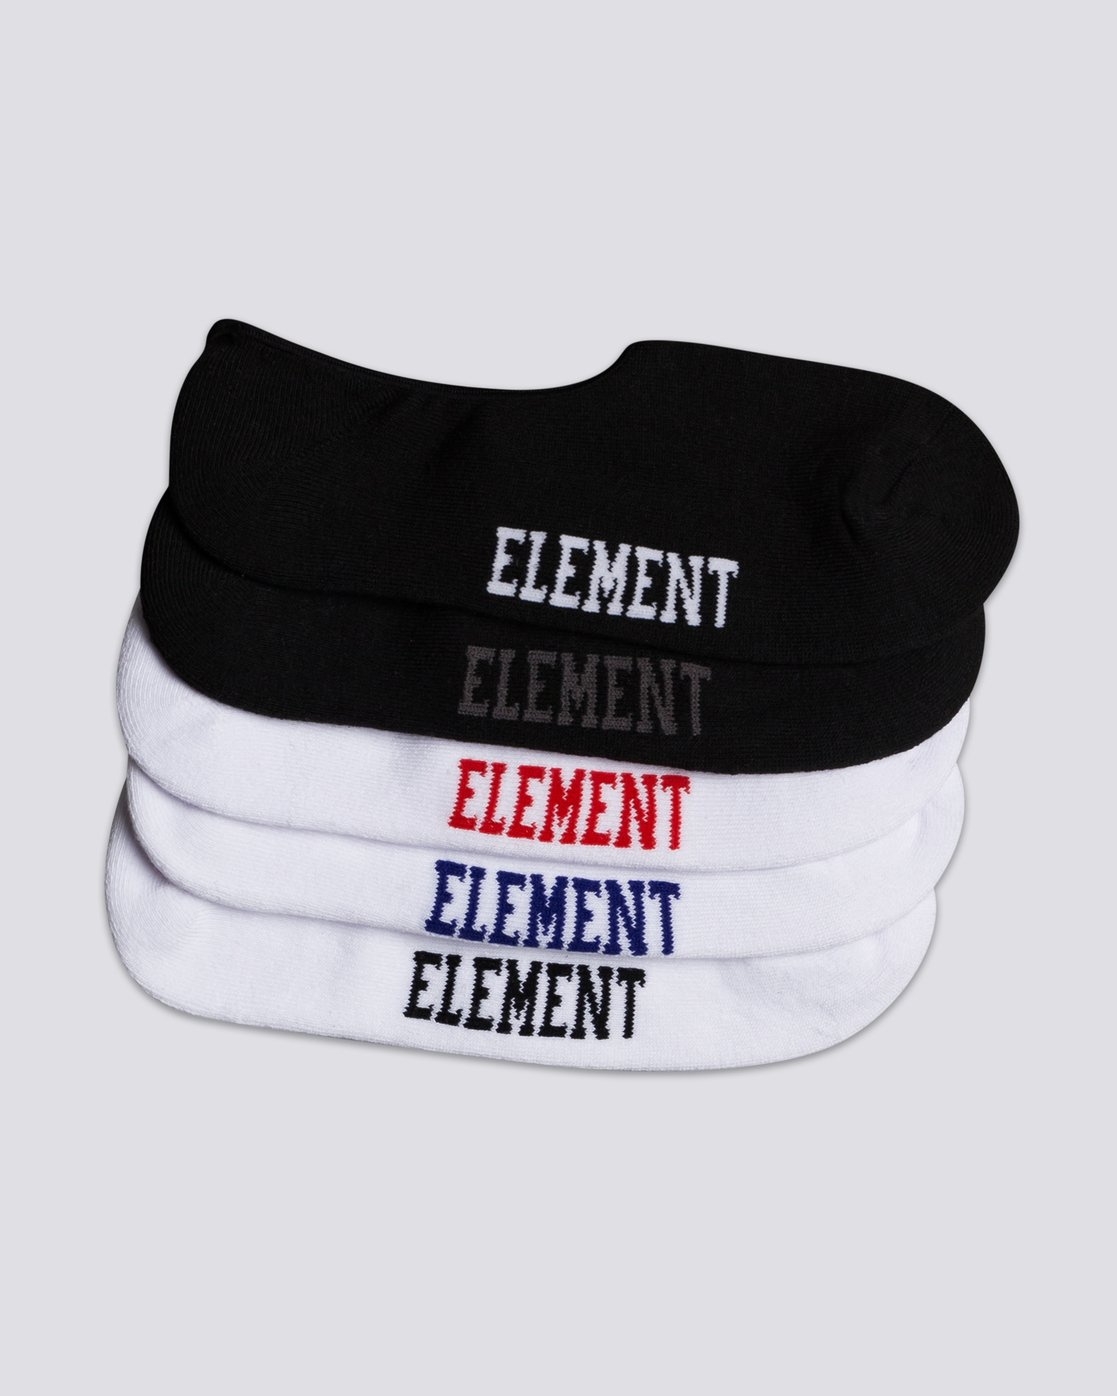 1 Low-Rise 5-Pack Socks Grey MASKELOR Element